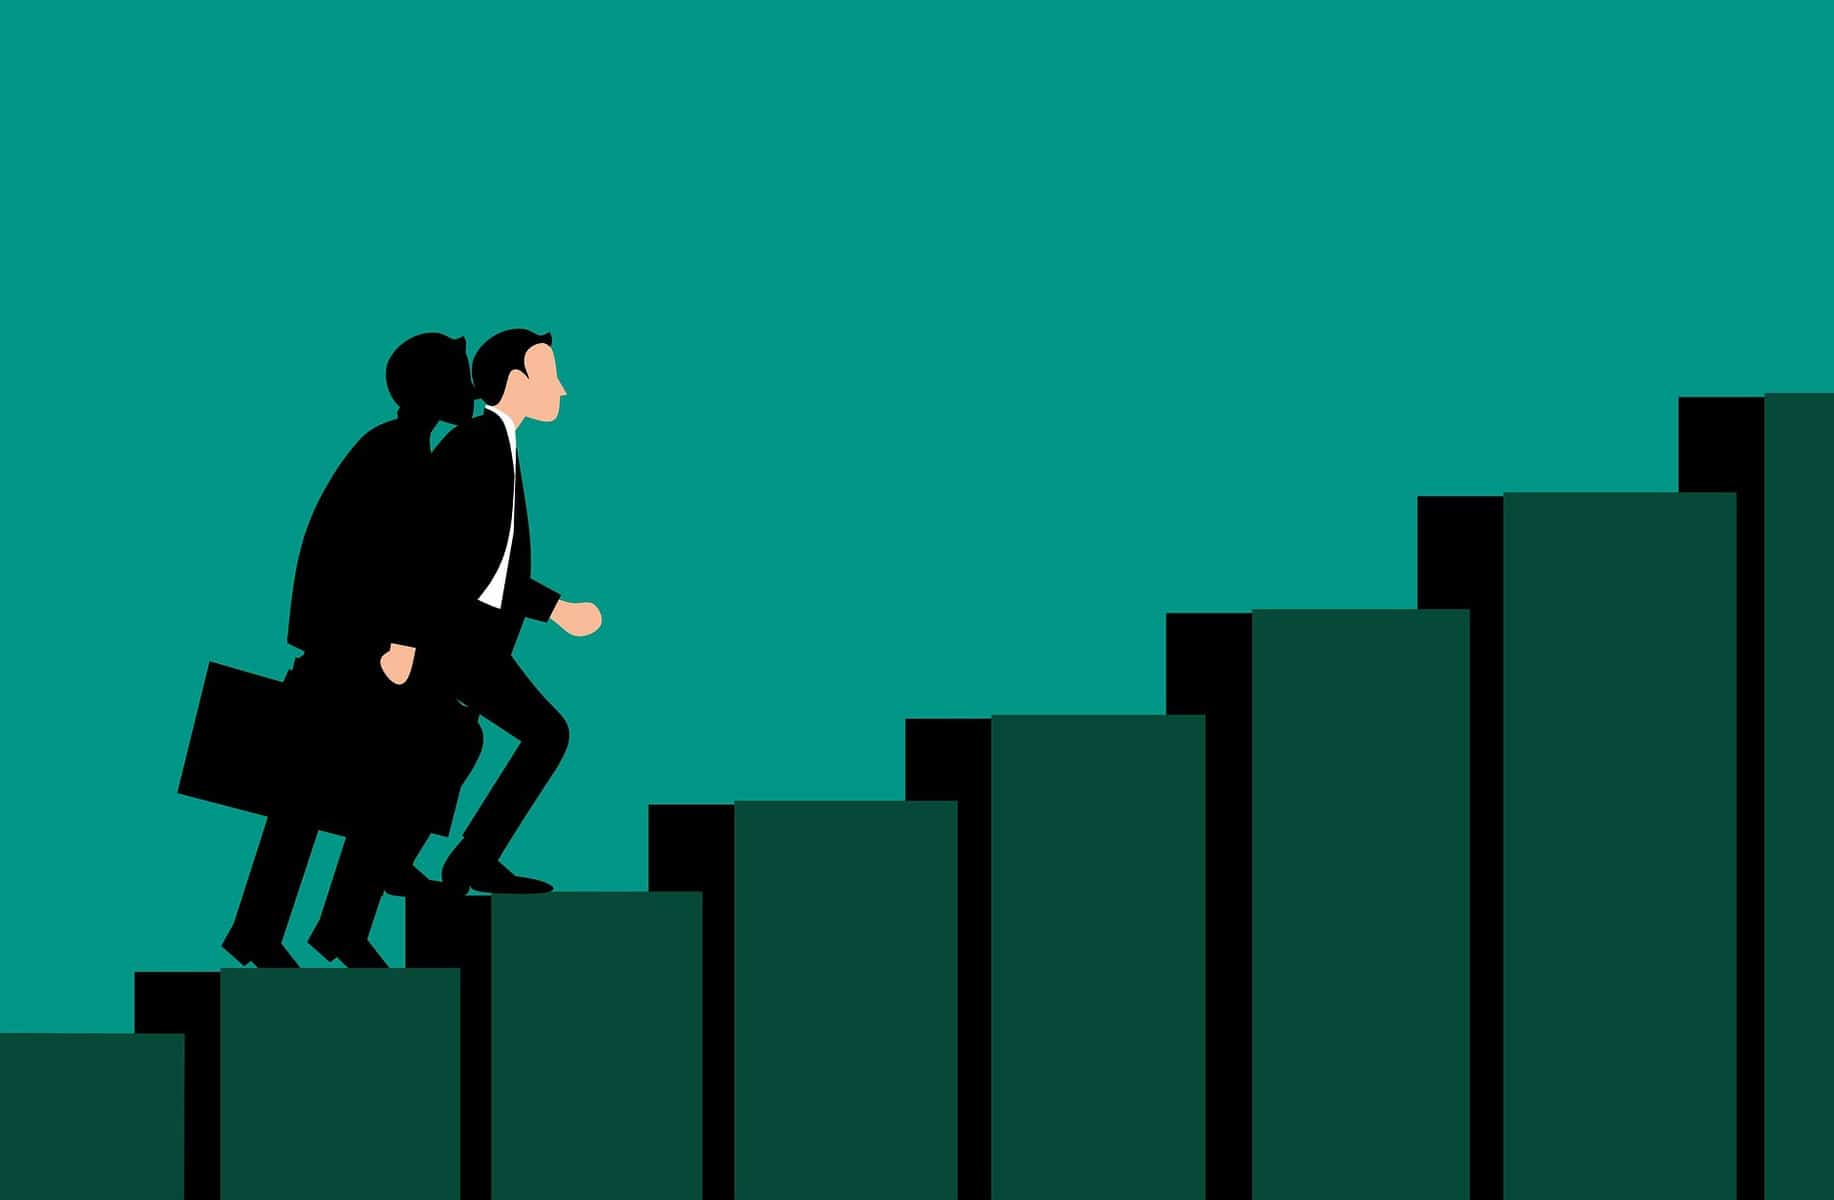 Illustration of business man climbing stairs.